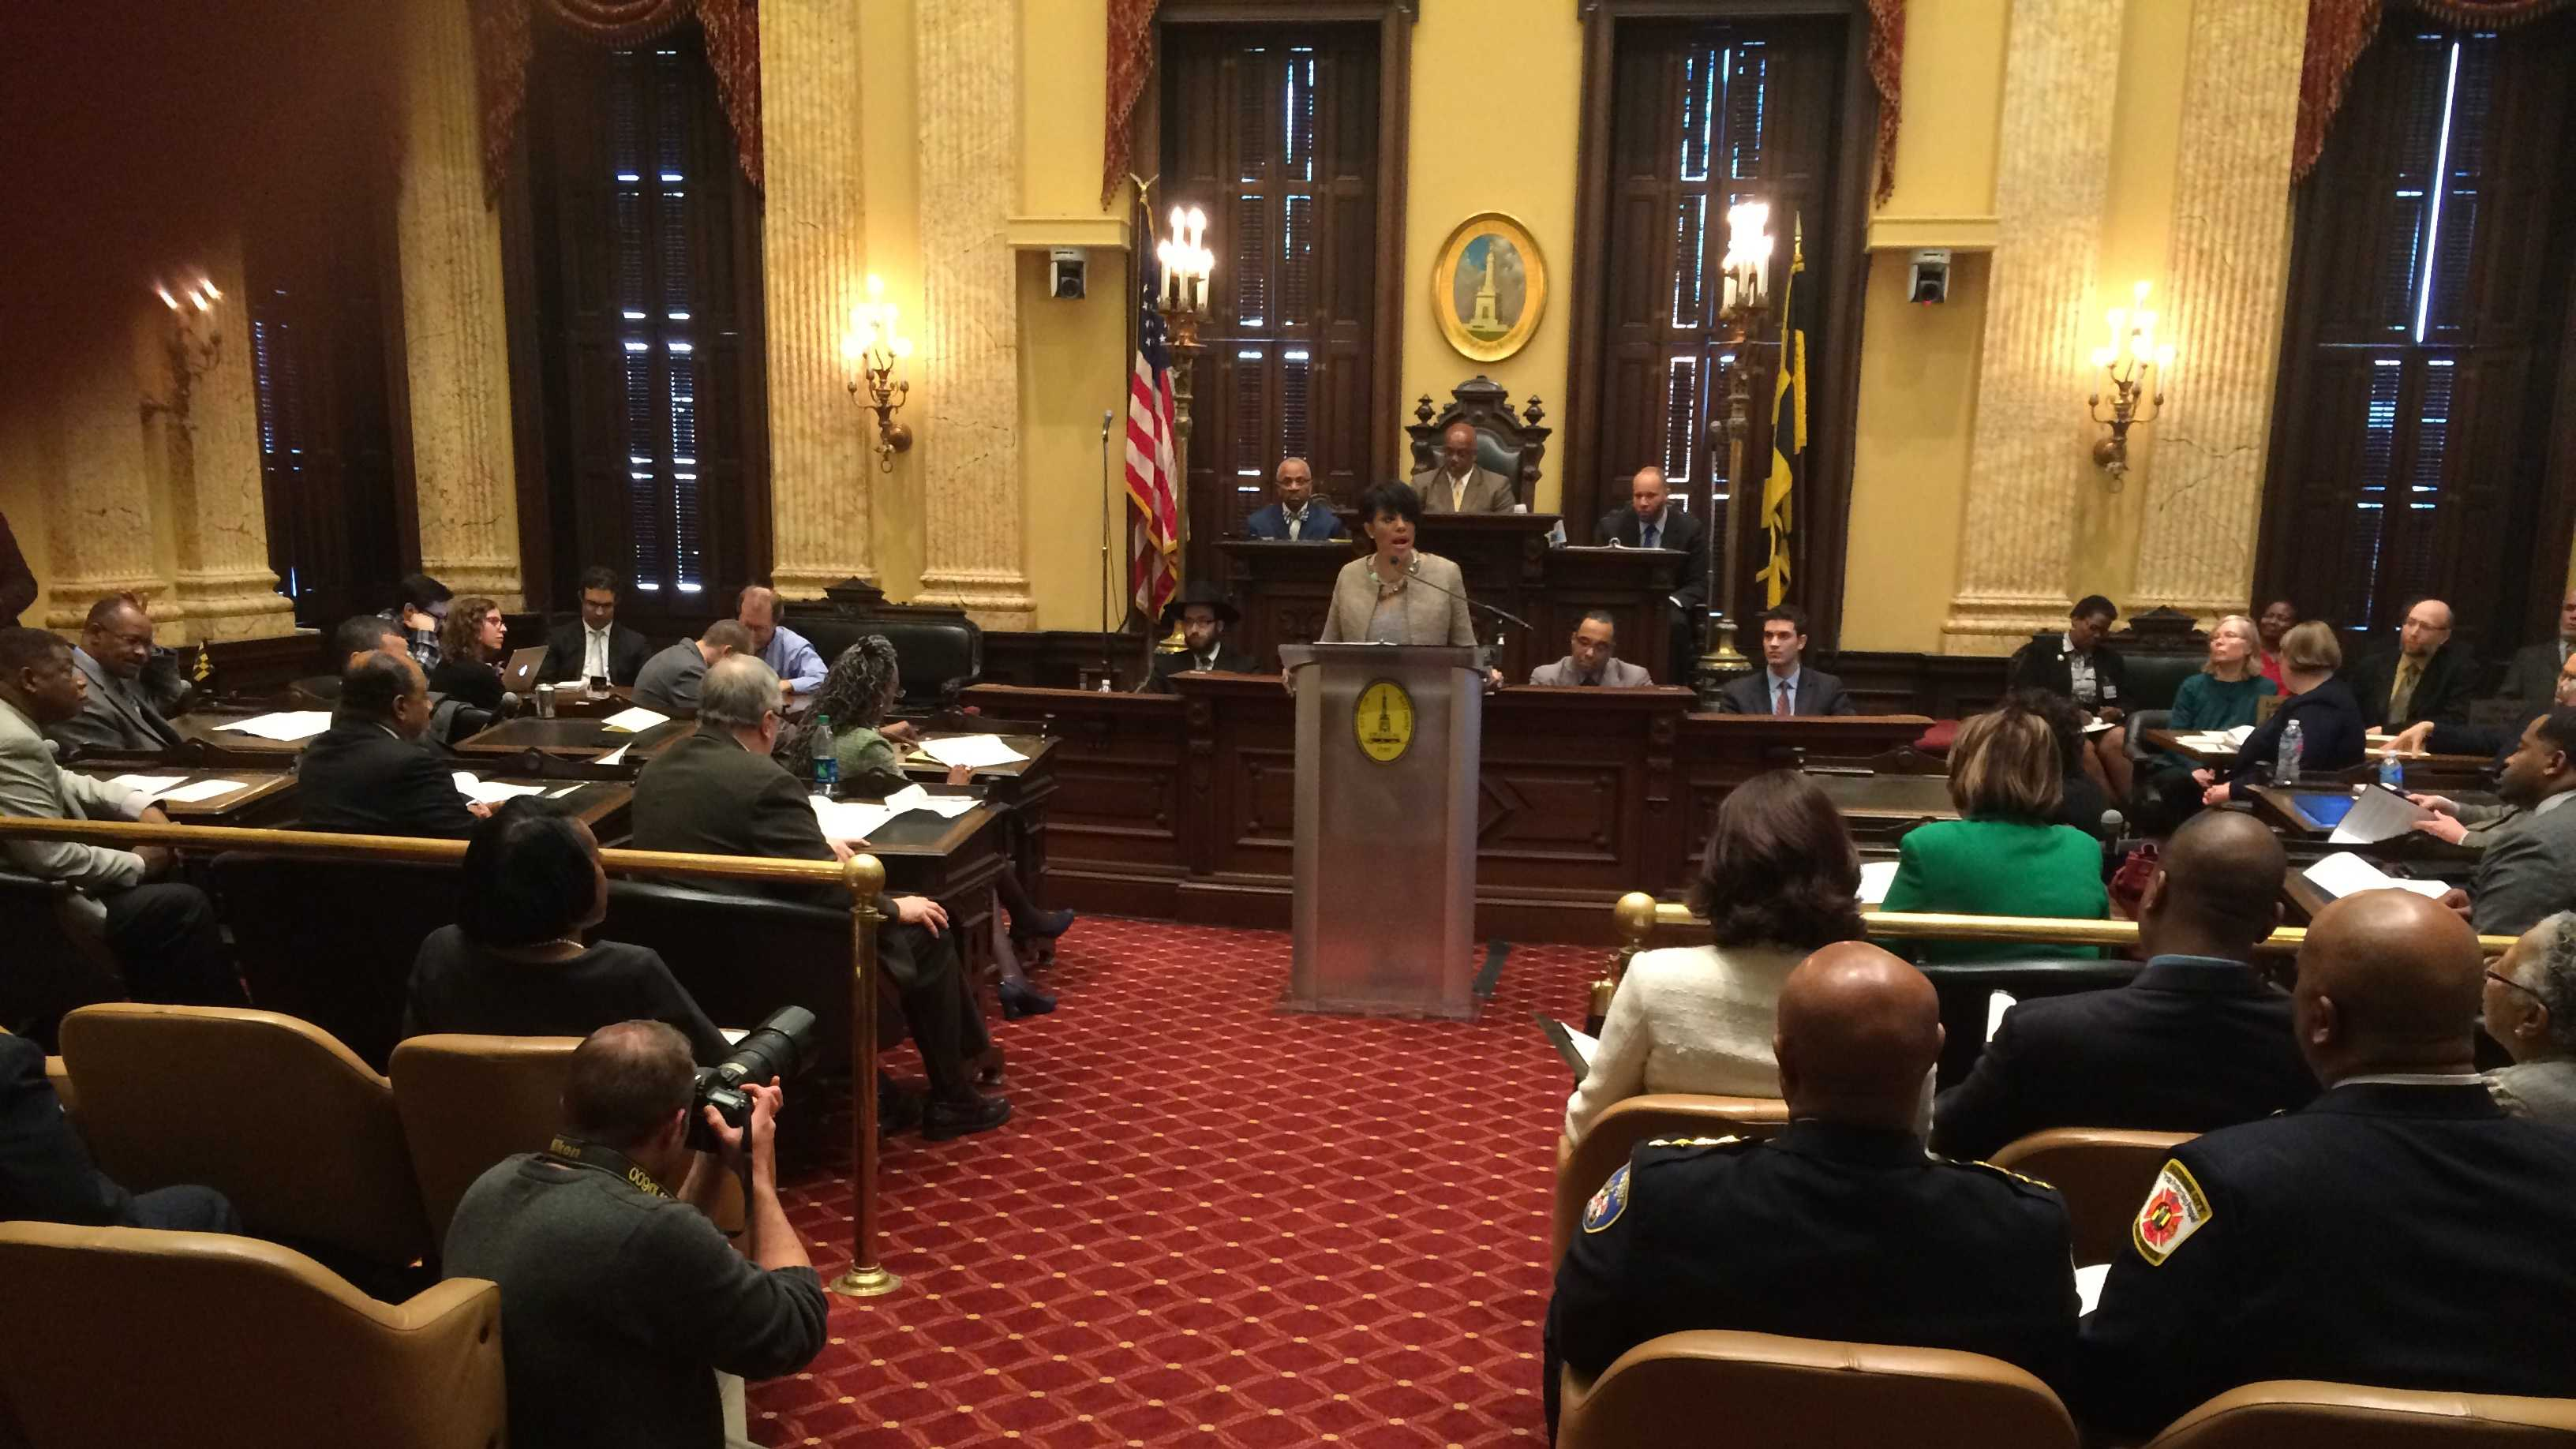 Baltmore Mayor Stephanie Rawlings-Blake delivers her State of the City address